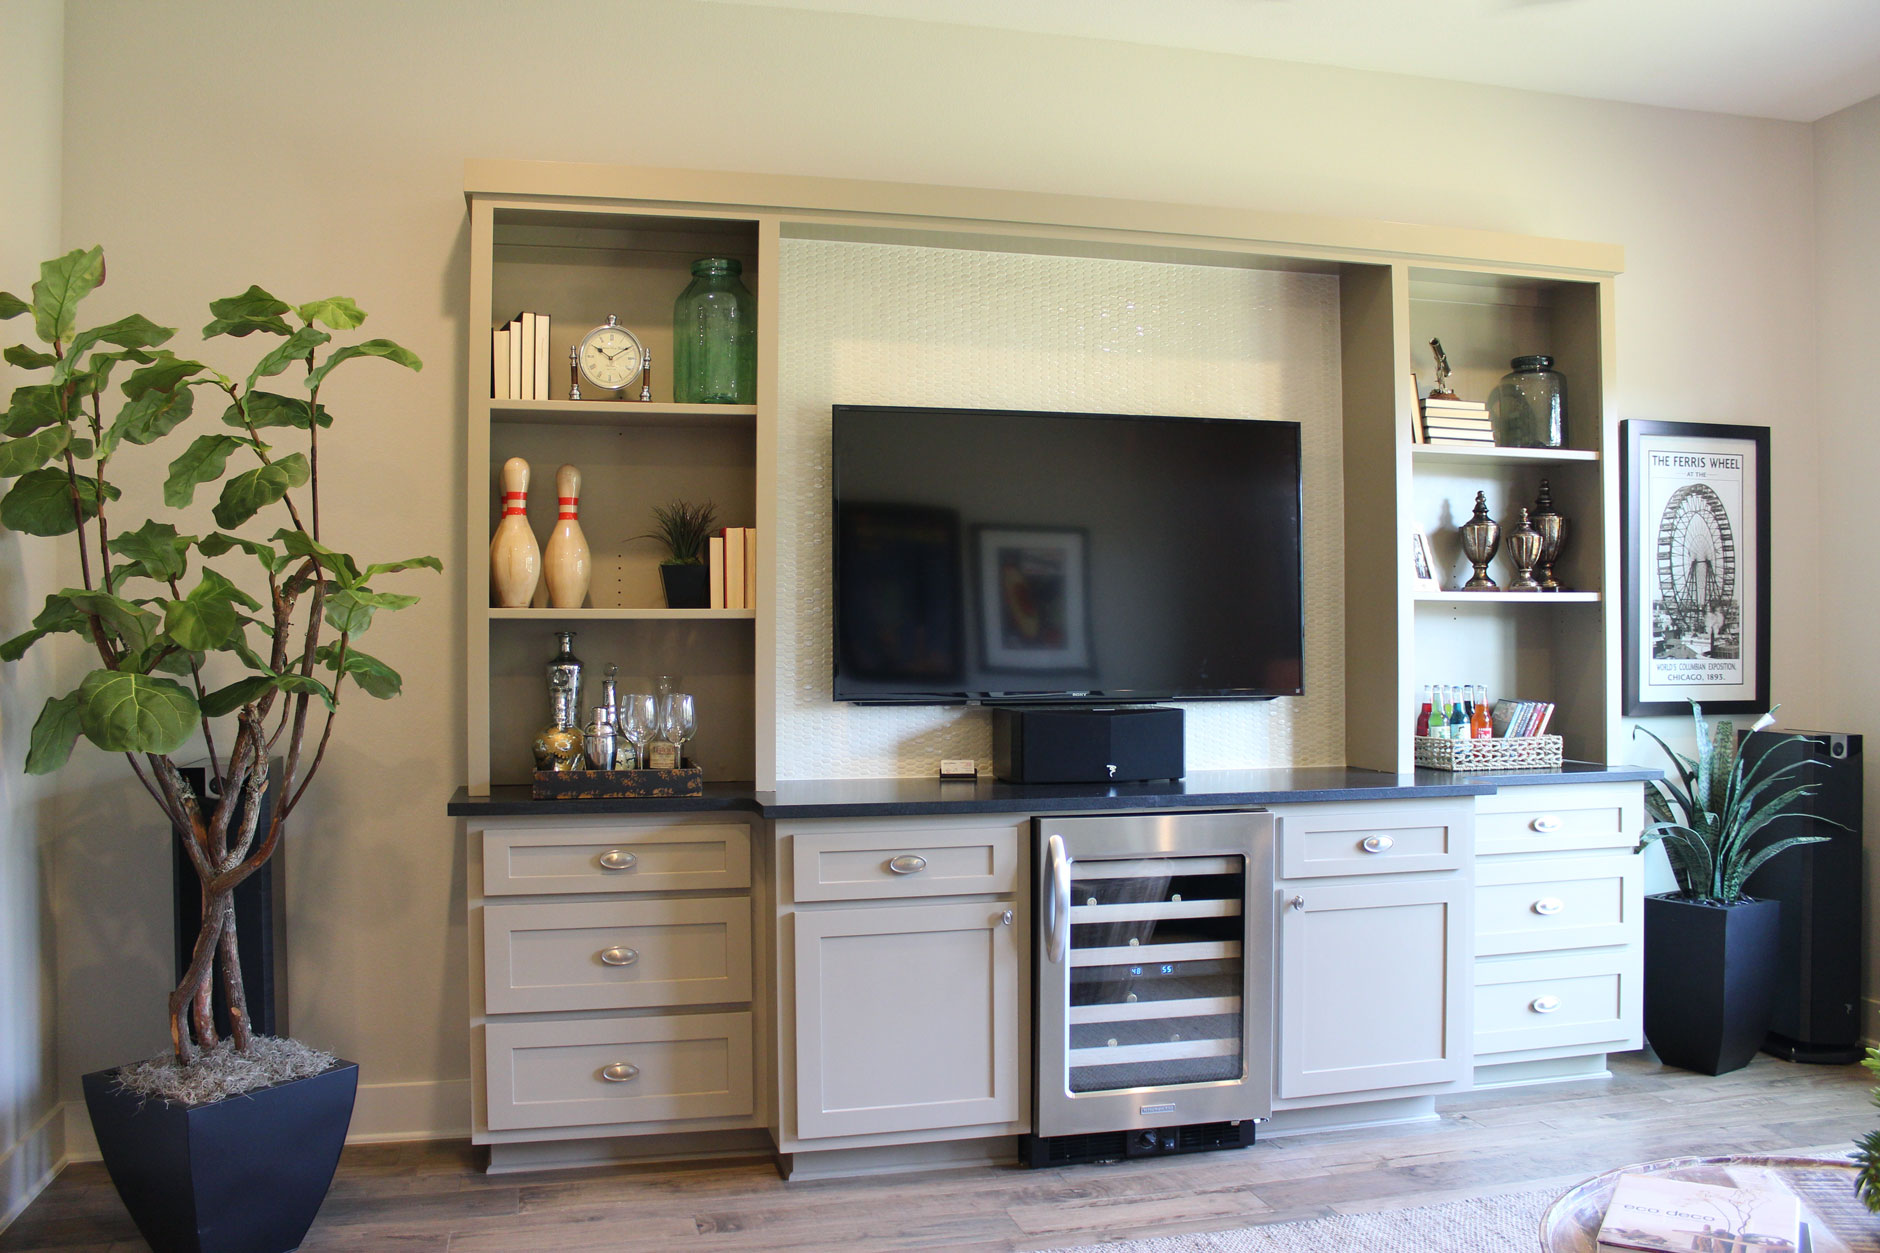 Burrows Cabinets media center with wine storage